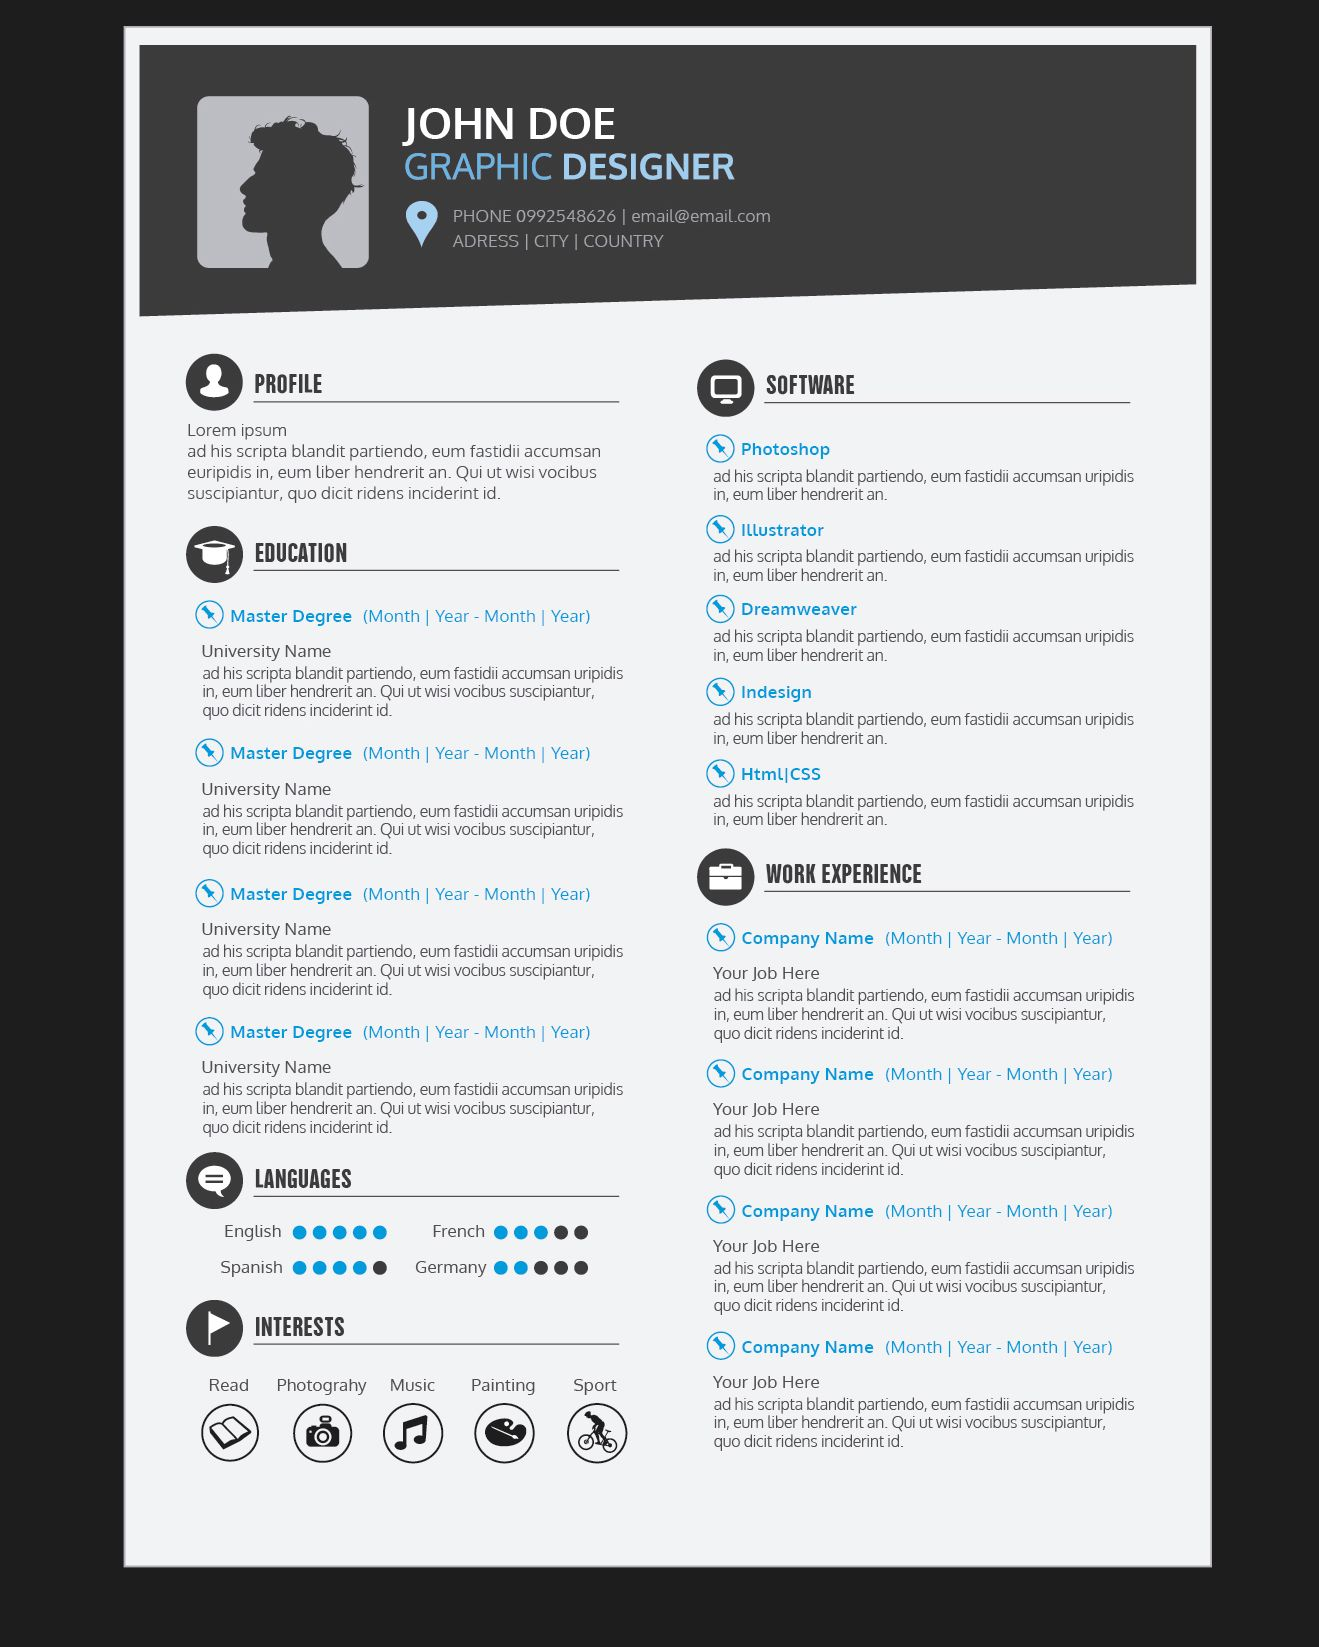 Graphic designer resume cv vector download image user yelopaper Gallery